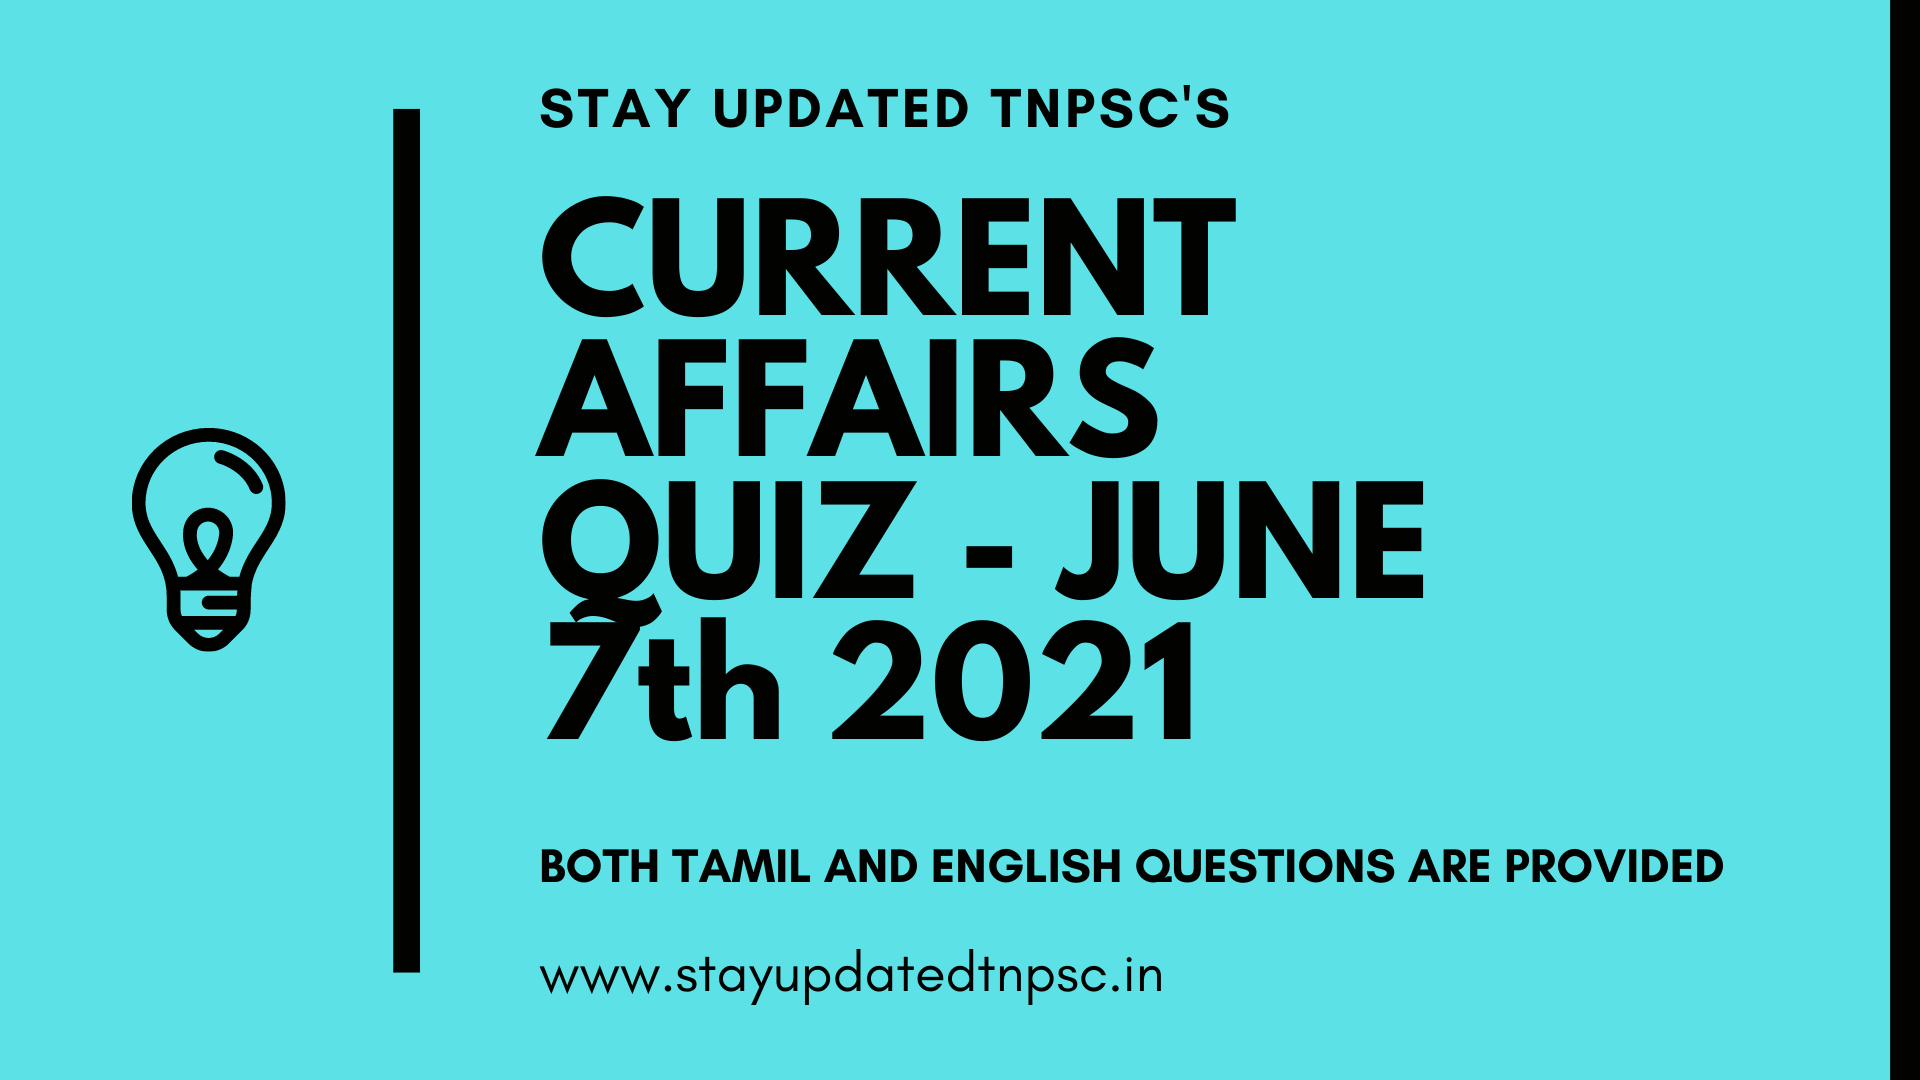 TNPSC DAILY CURRENT AFFAIRS: 07 JUNE 2021